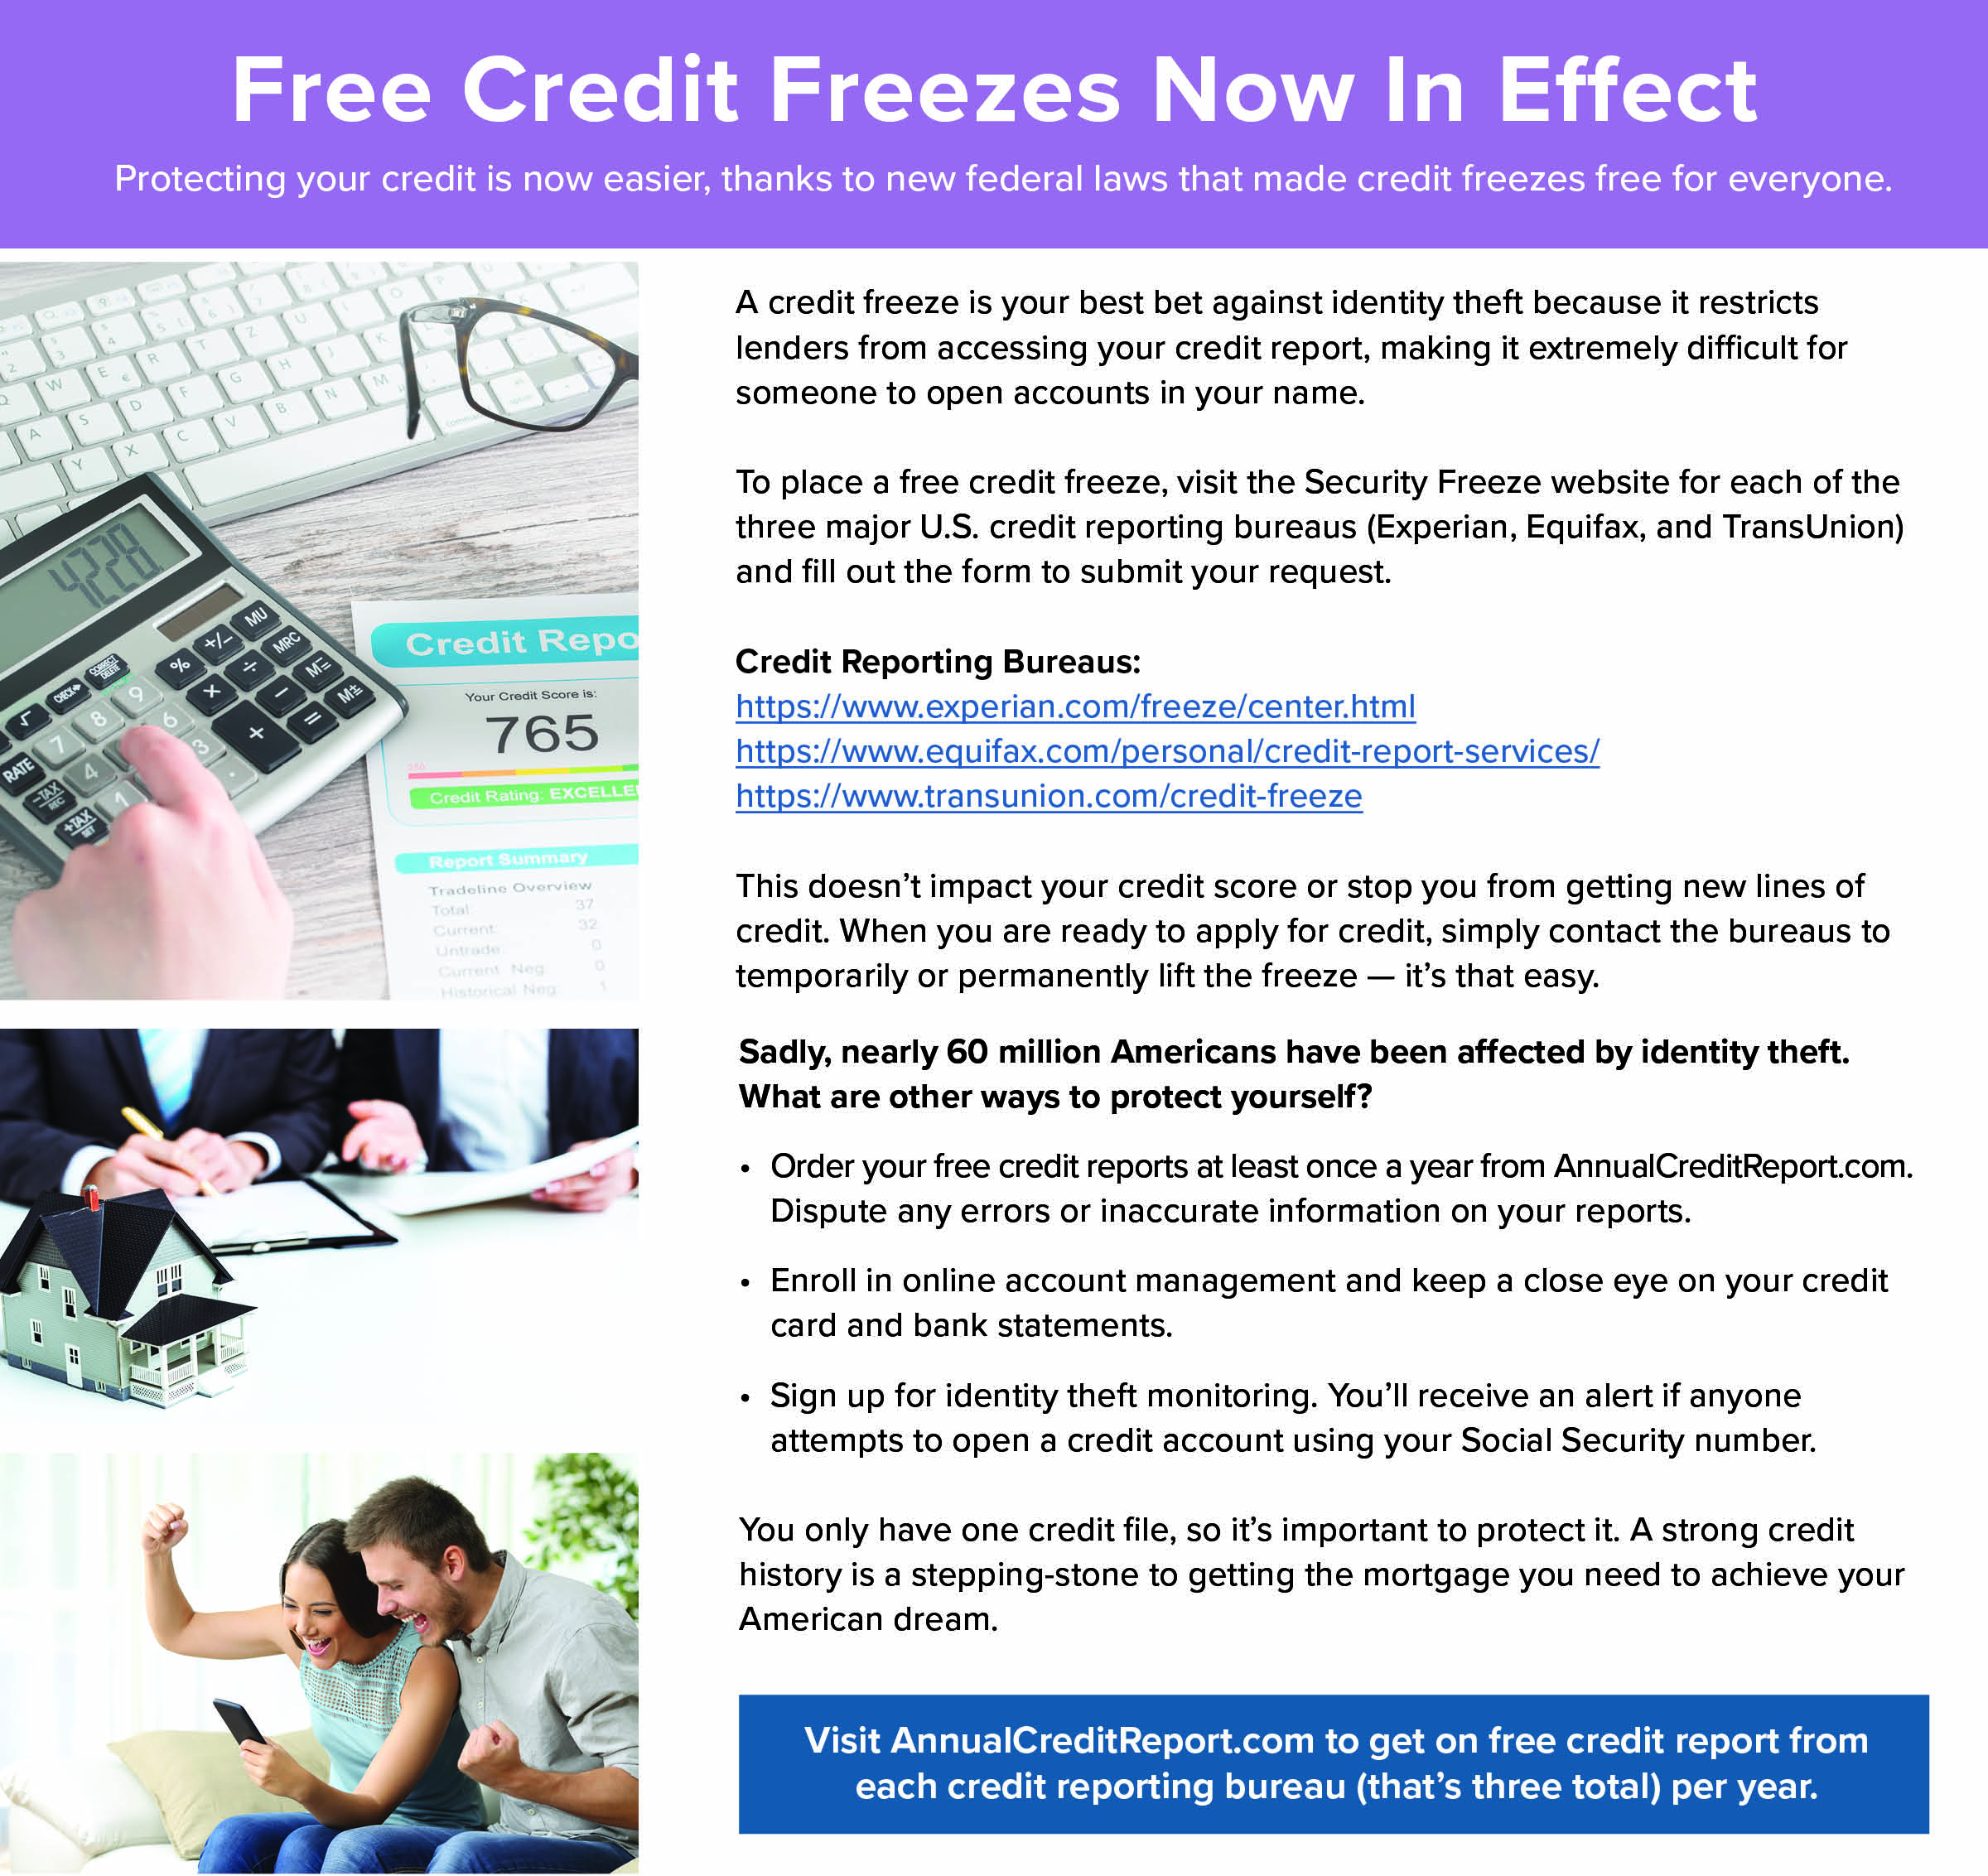 Mortgage Process - Free Credit Freezes - OSI.jpg